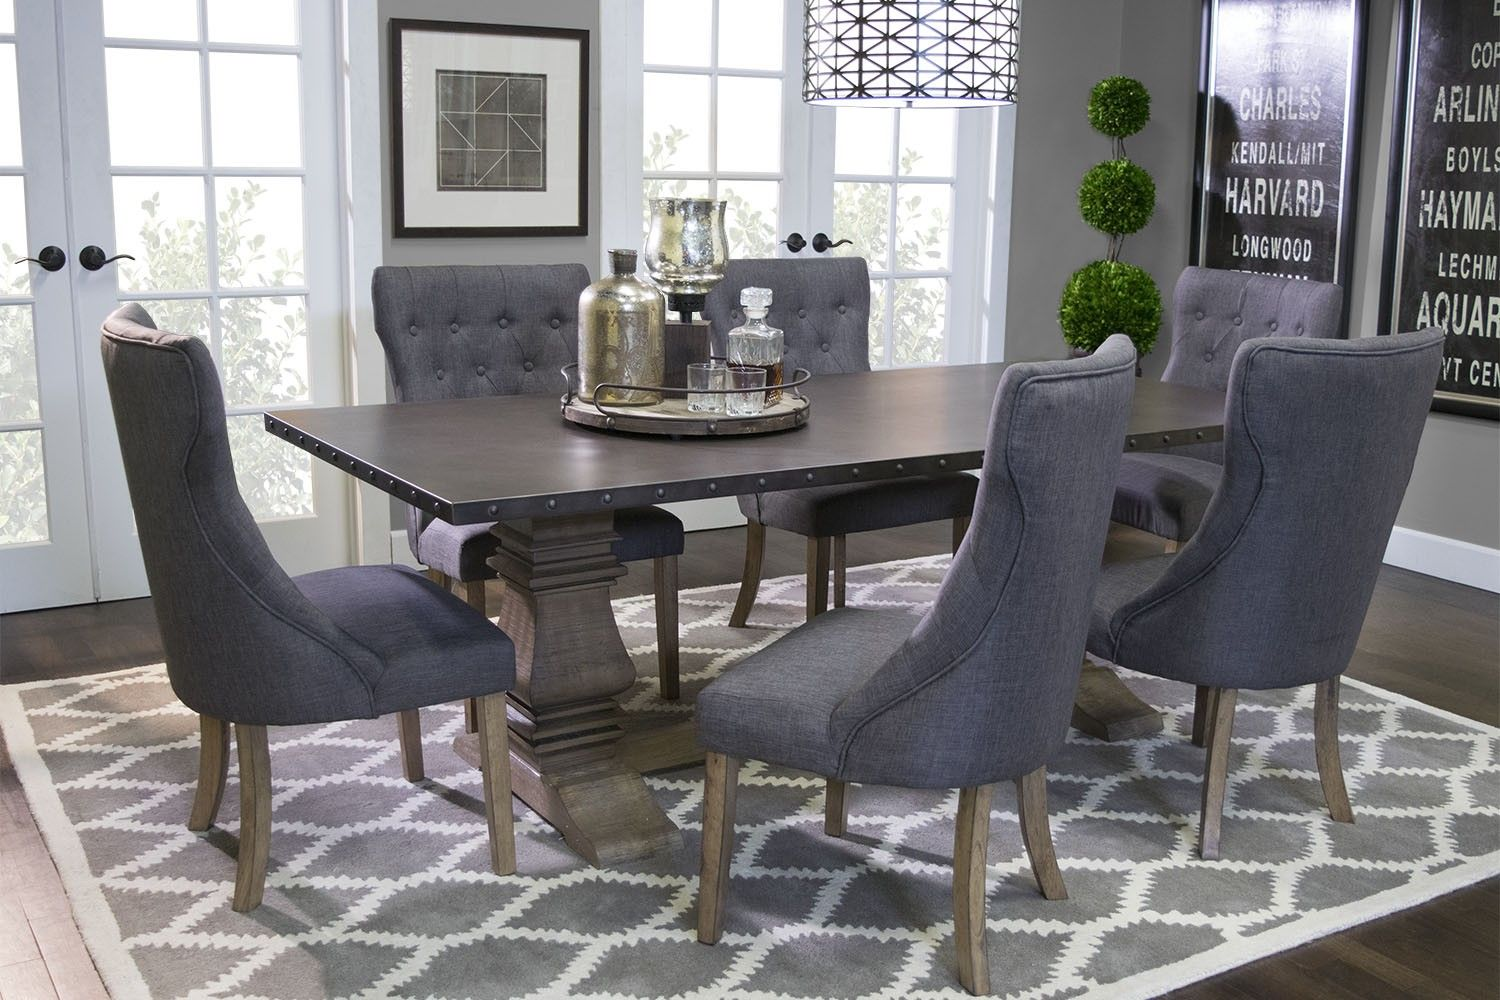 Mor Furniture For Less: The Zinc Dining Room | Mor Furniture For Less